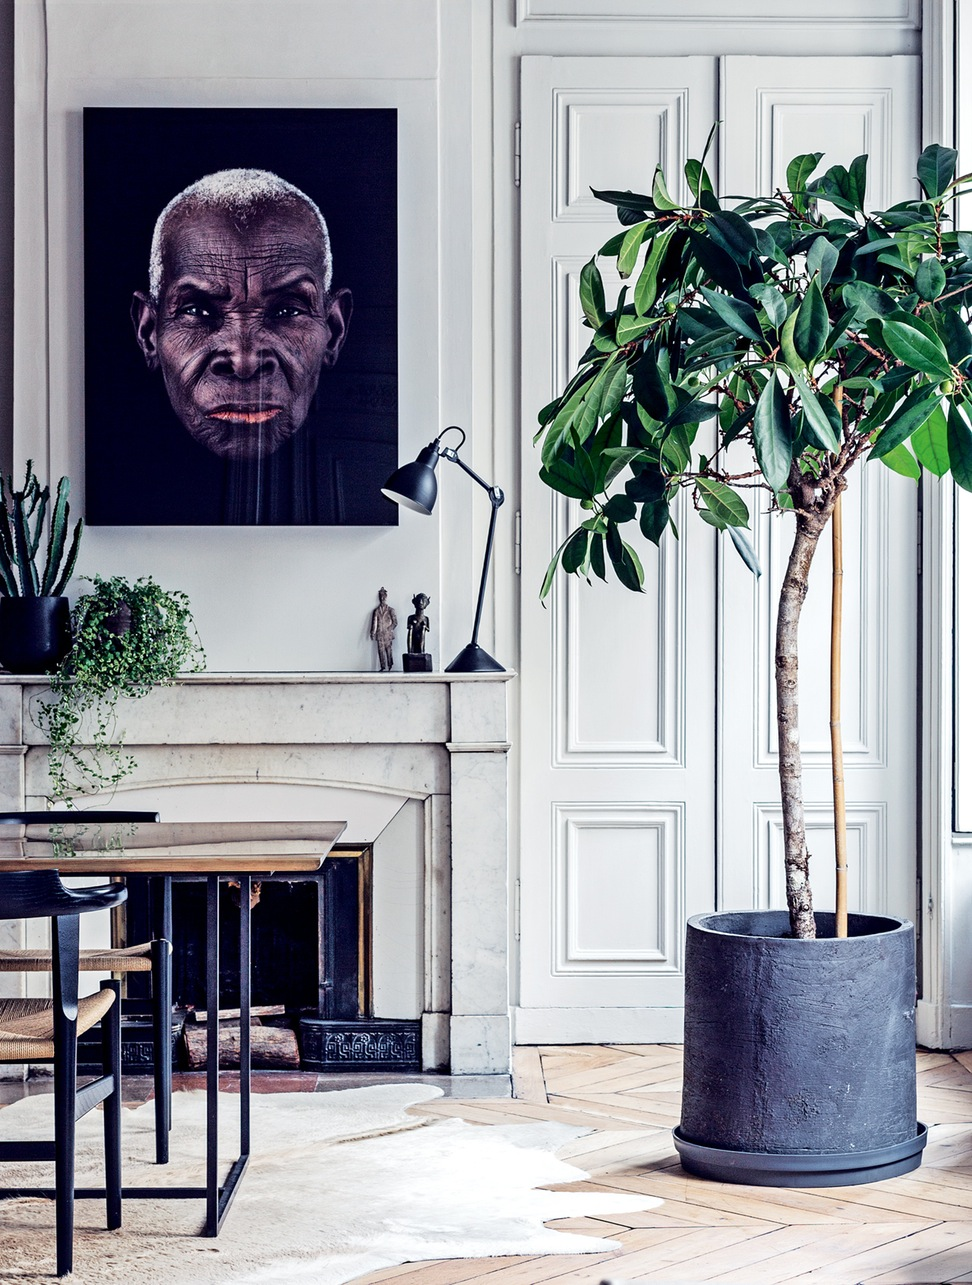 vogue-living-how-to-choose-the-perfect-plant-for-your-home-interior_interior-classic-paris-white_interior-design_interior-design-atlanta-online-institute-how-much-do-designers-make-ide